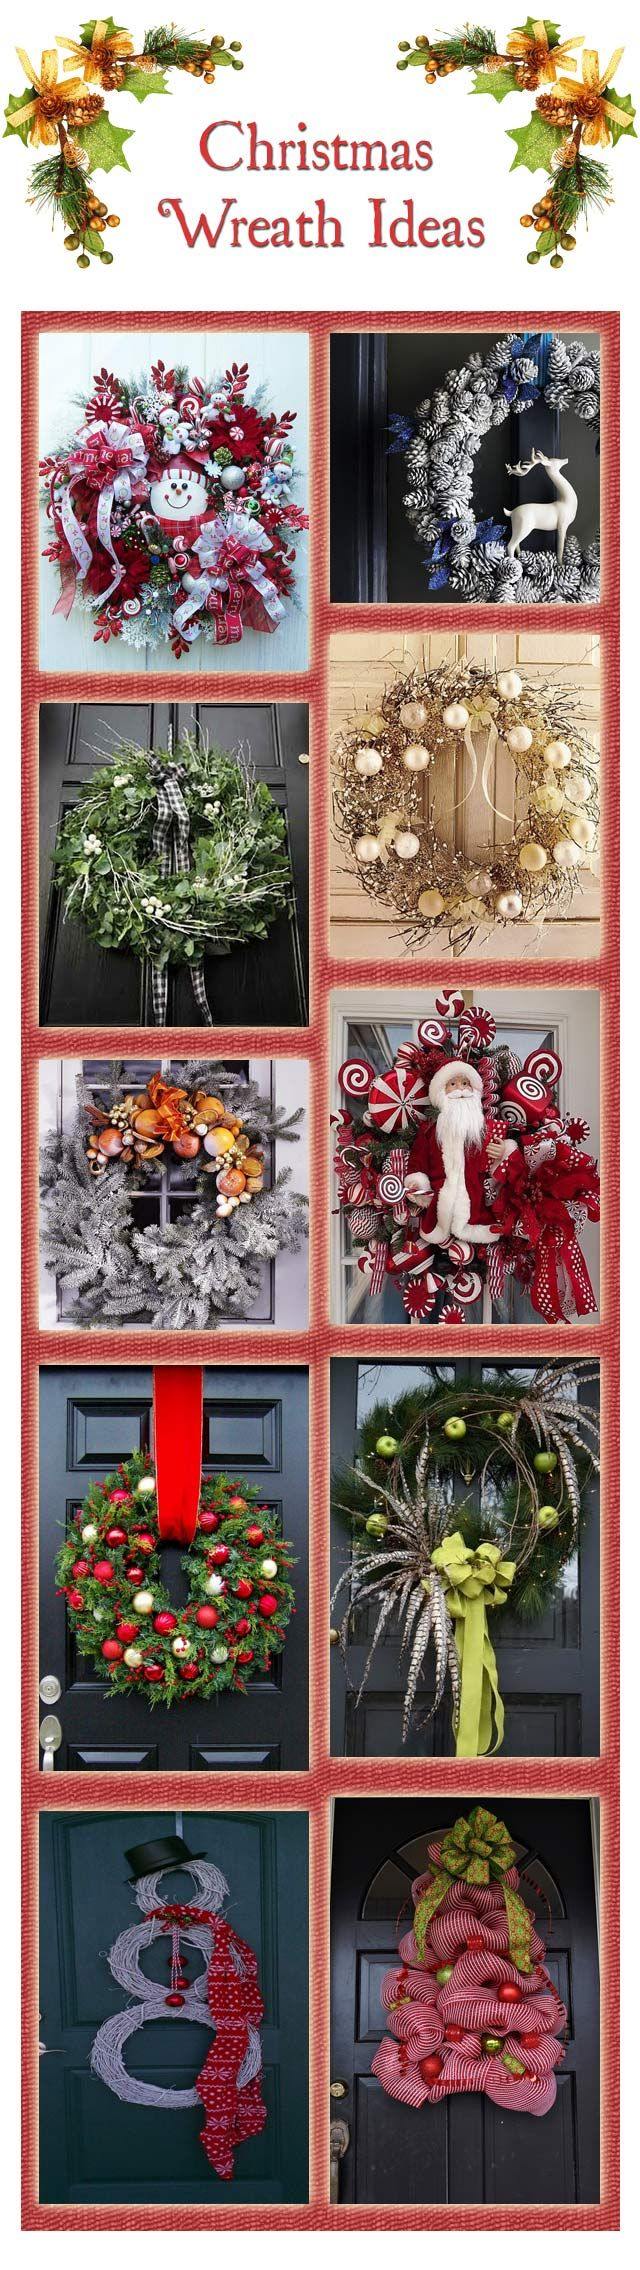 We've selected a number of beautiful Christmas wreath ideas for decorating your front door.